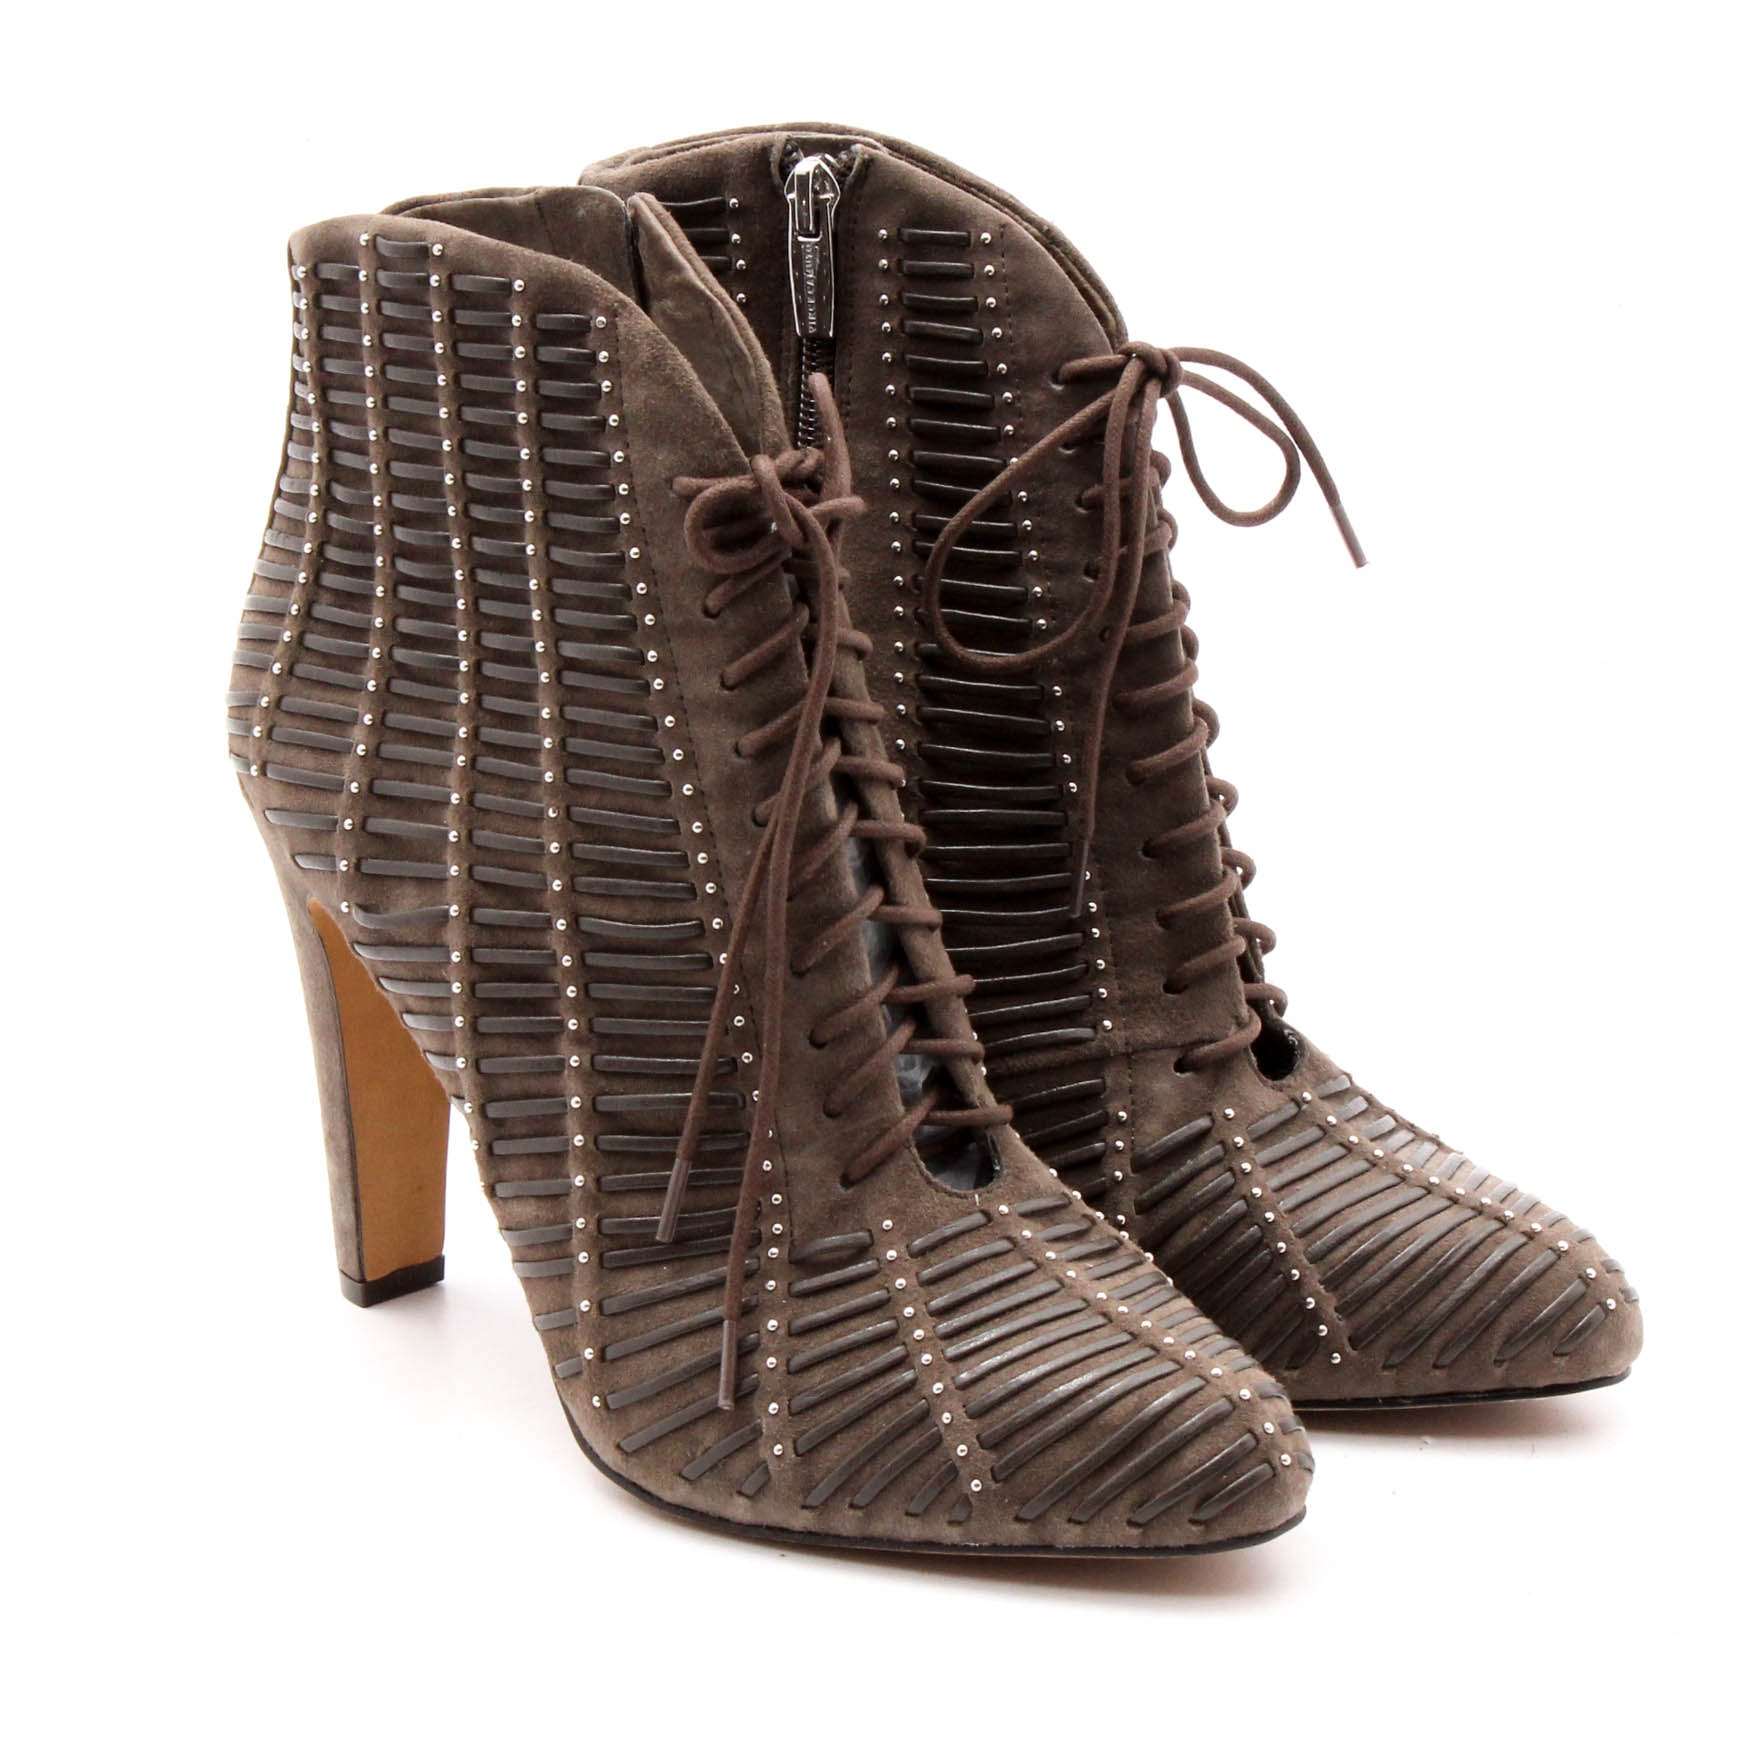 Vince Camuto Brown Suede and Leather Lace-Up Booties